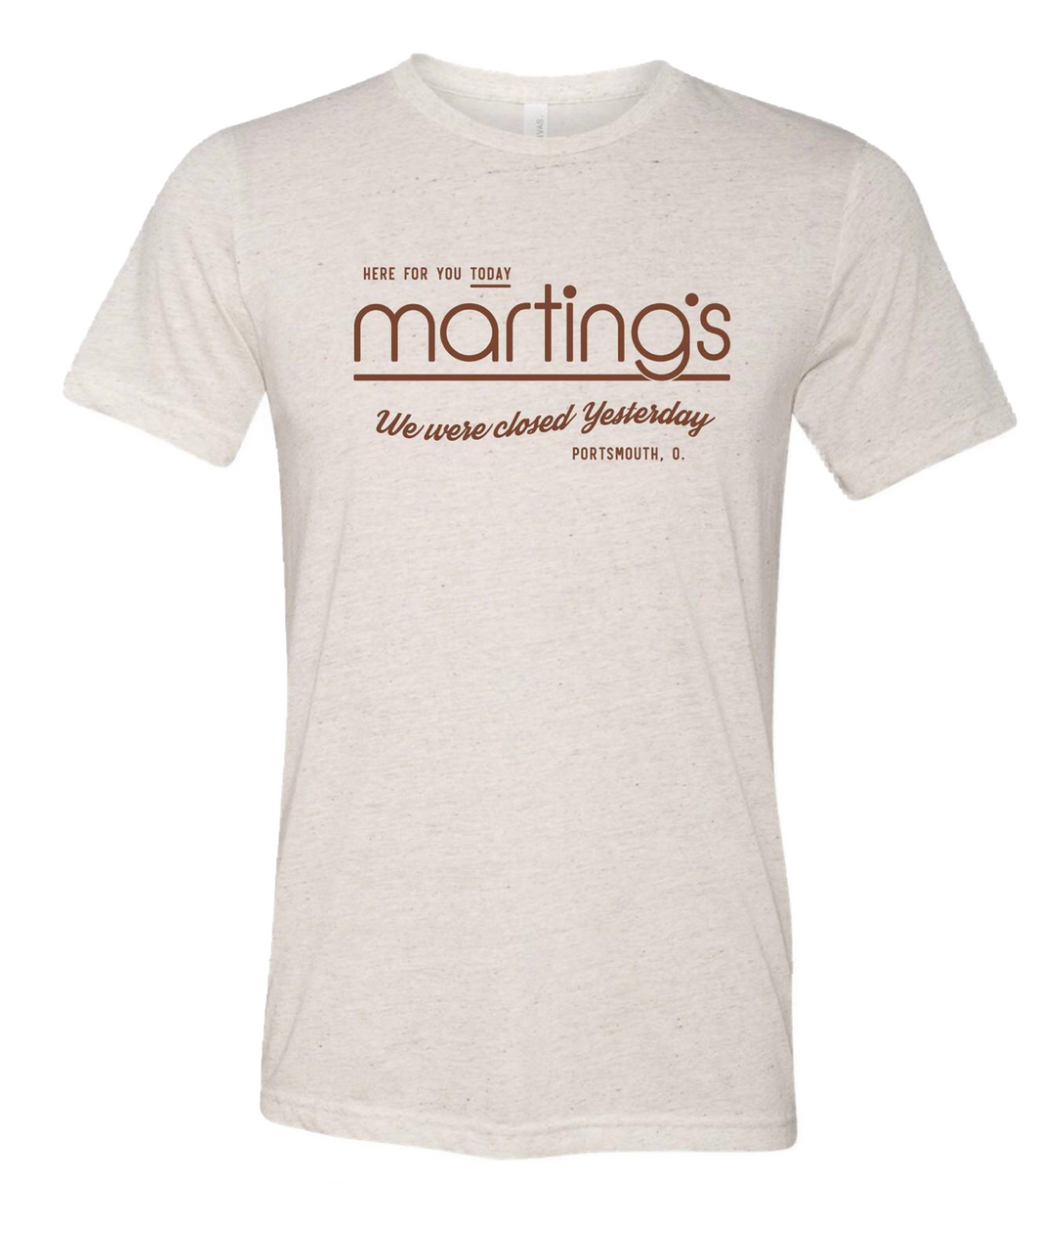 Martings Tee - Men's